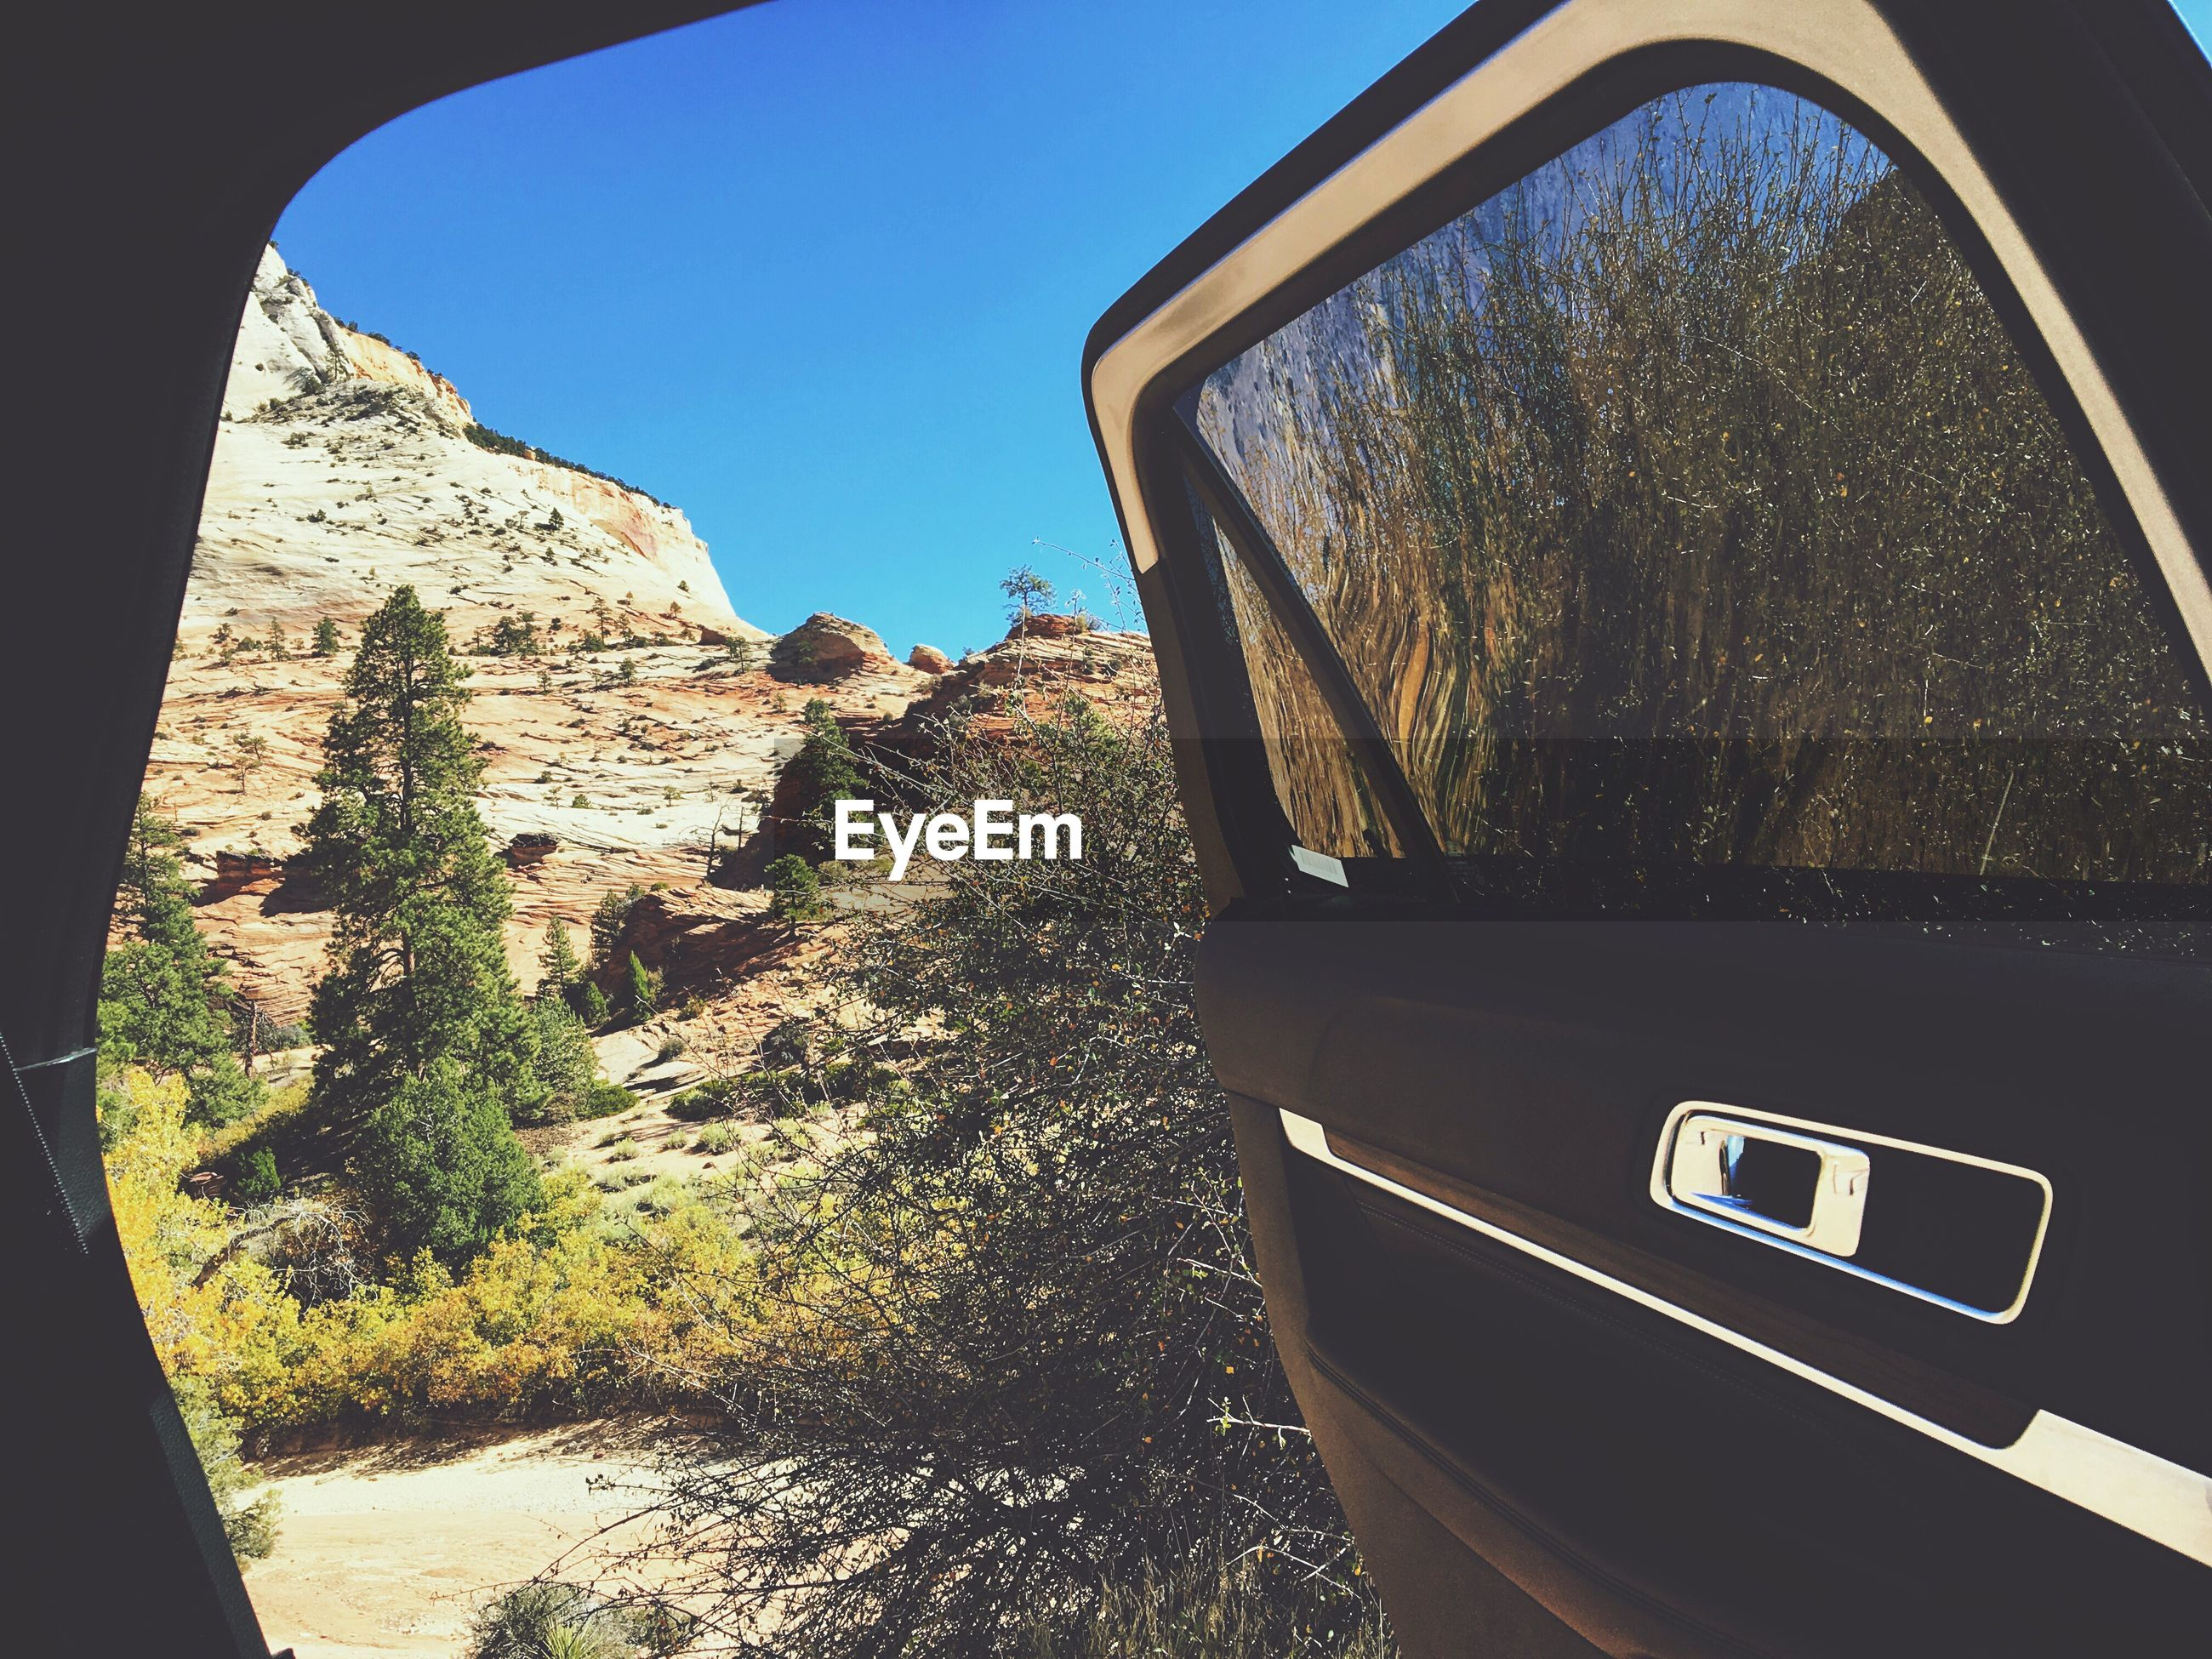 transportation, car, sky, land vehicle, window, vehicle interior, clear sky, mode of transport, car interior, close-up, day, outdoors, no people, vehicle mirror